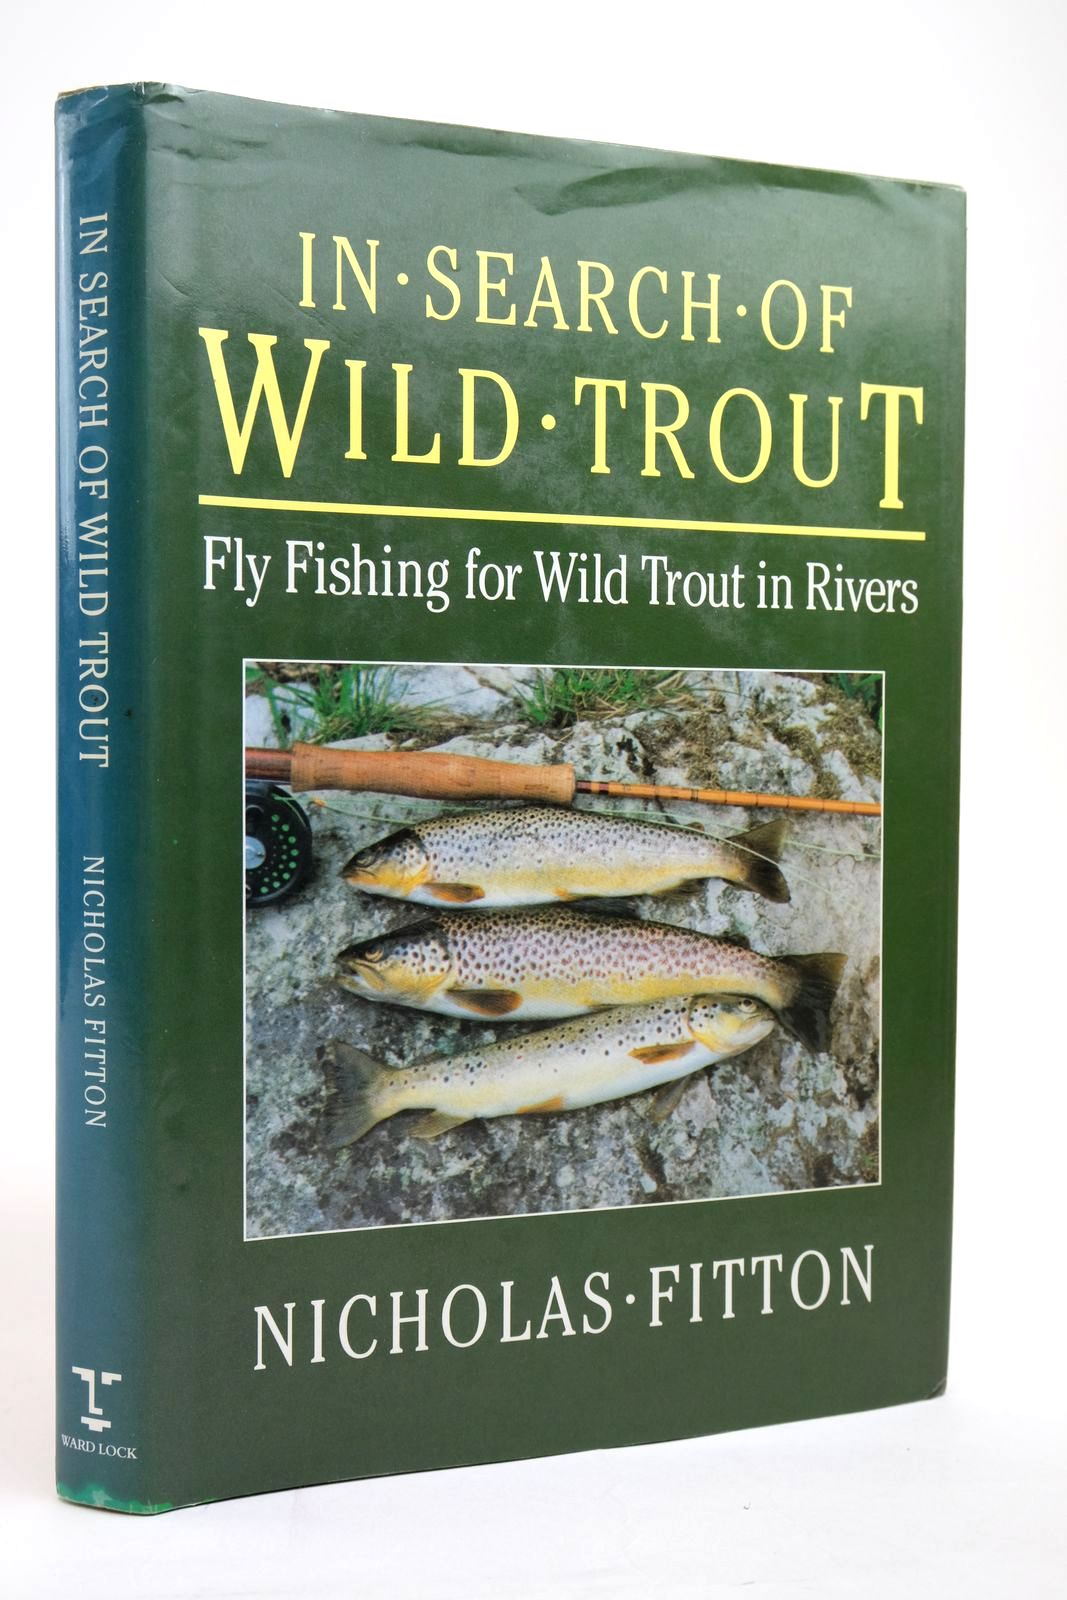 In Search of Wild Trout